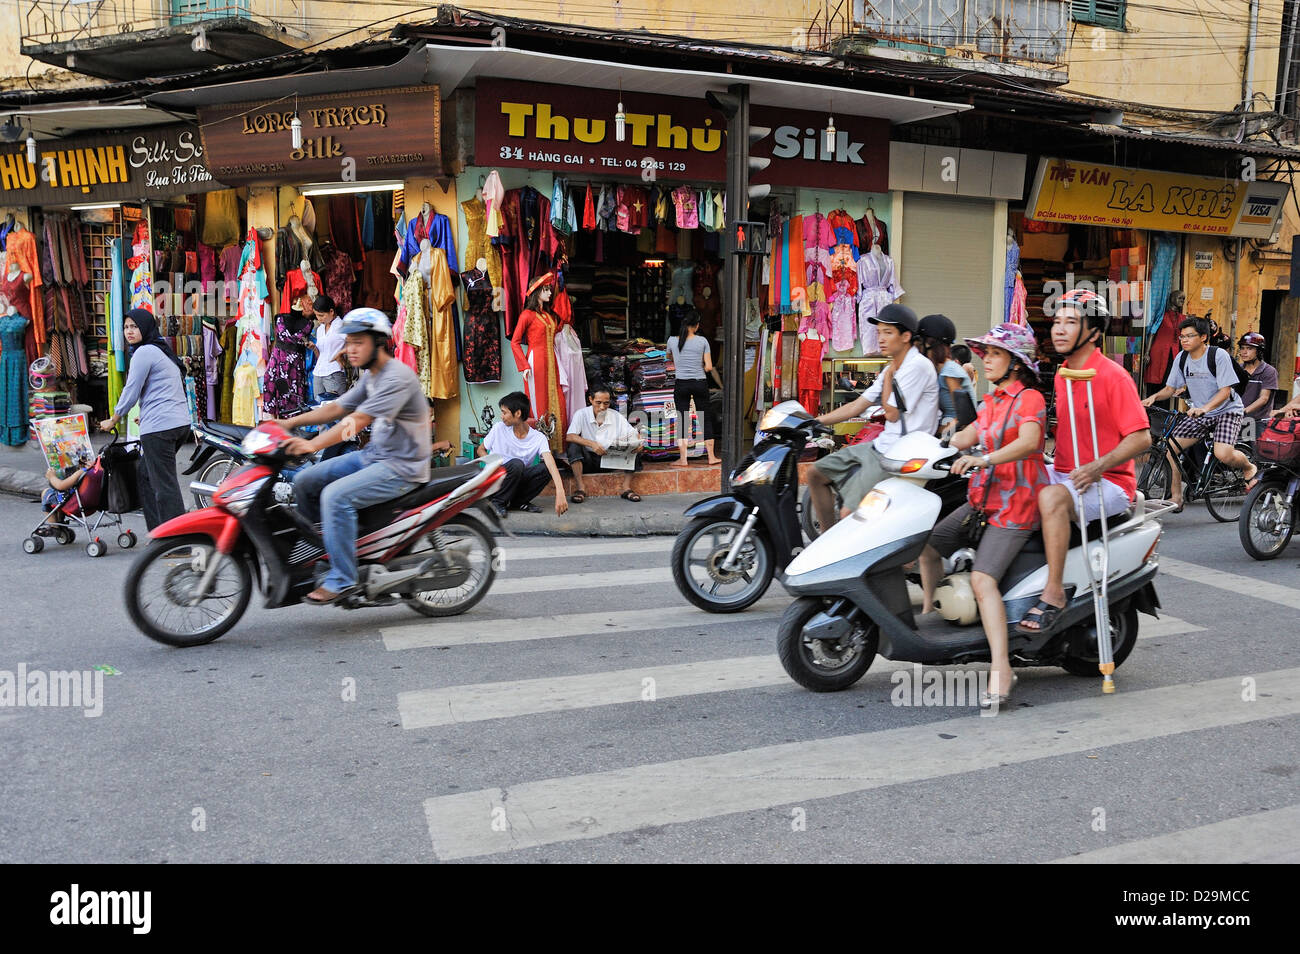 Hanoi, Vietnam - street scene at a road junction - Stock Image